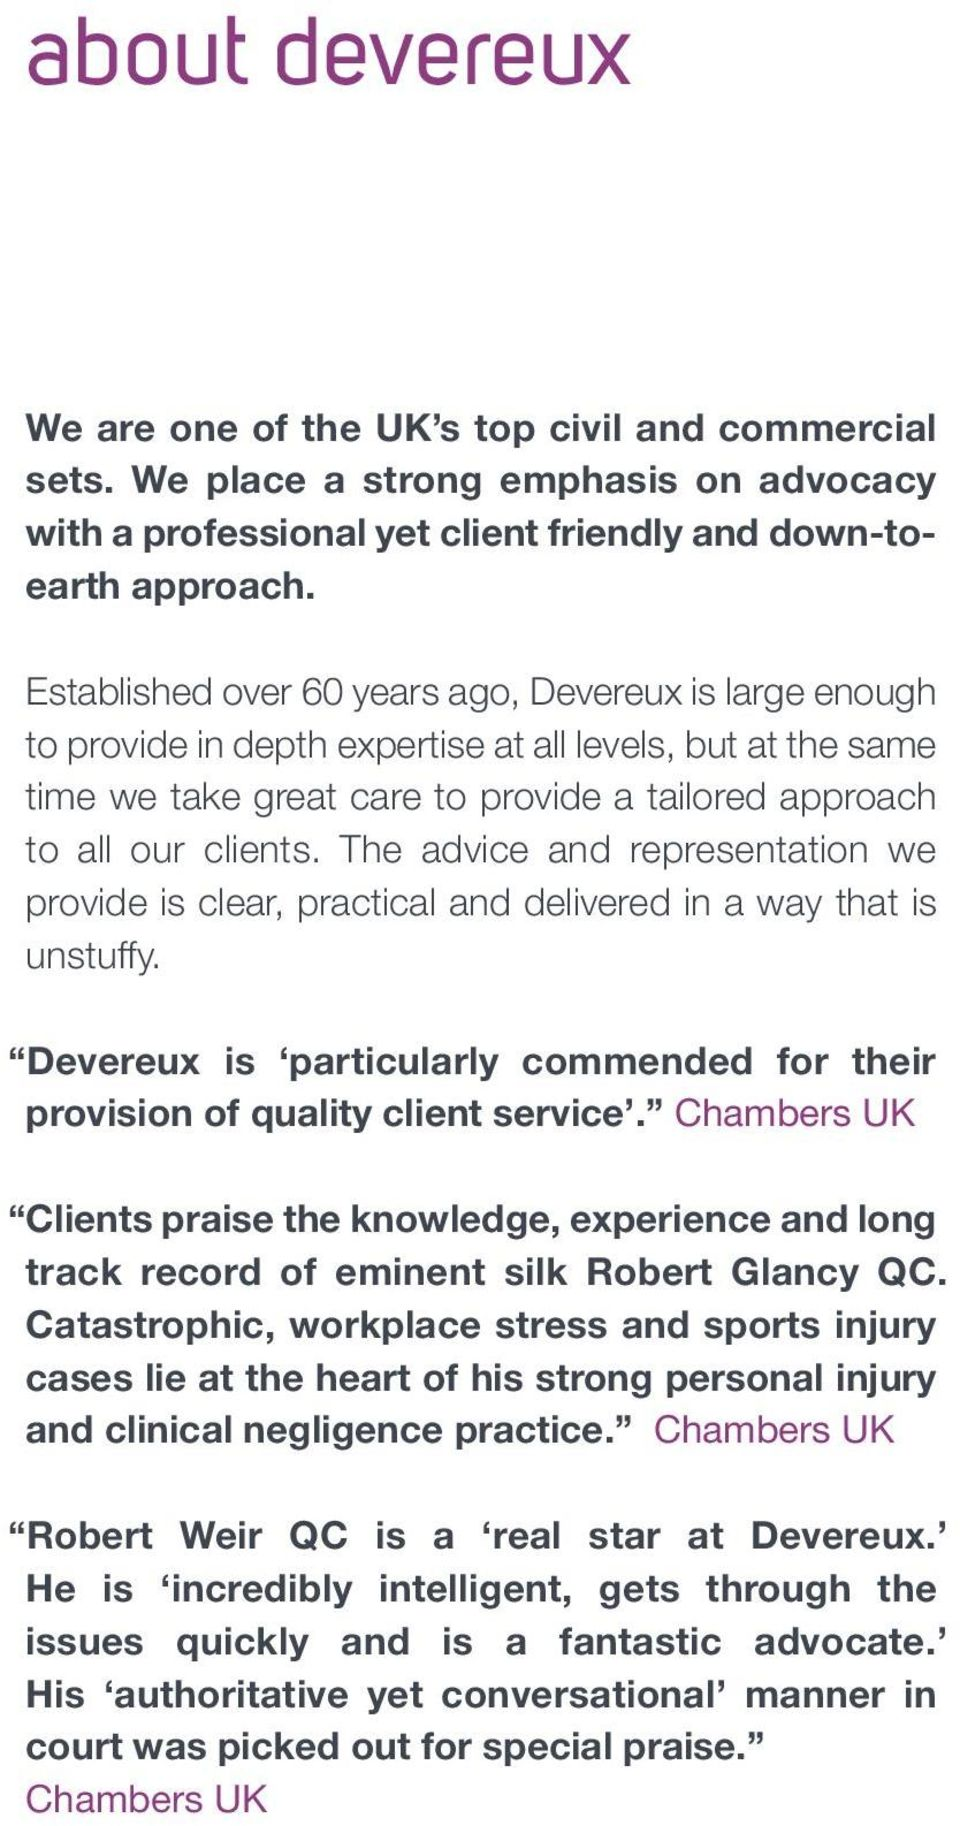 The advice and representation we provide is clear, practical and delivered in a way that is unstuffy. Devereux is particularly commended for their provision of quality client service.